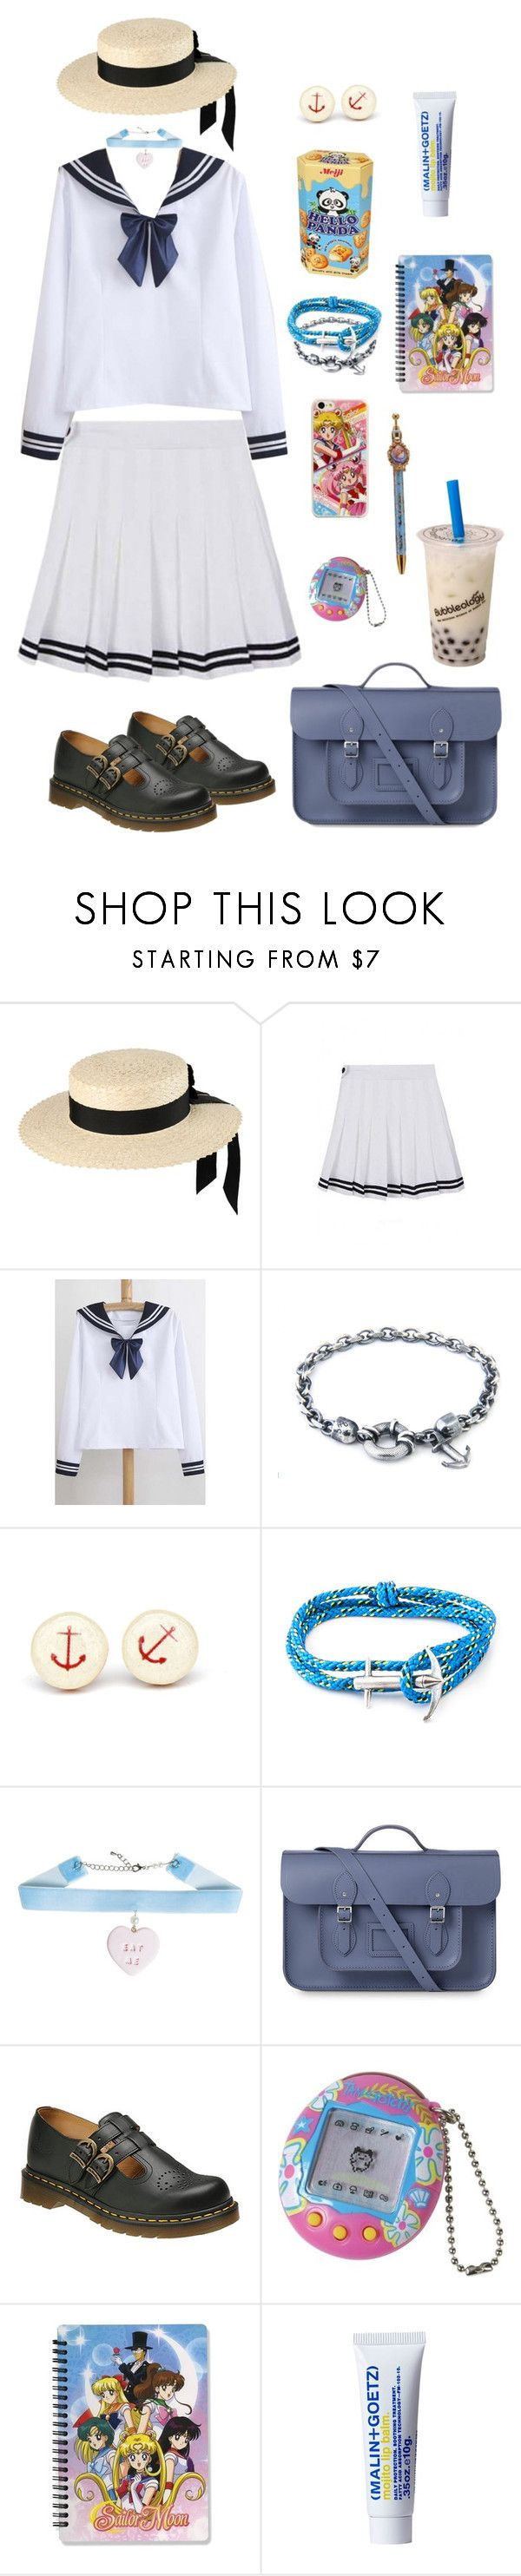 """""""ddlg sailor outfit ideas"""" by brokenbabydolly ❤ liked on Polyvore featuring Mich Dulce, WithChic, Anchor & Crew, The Cambridge Satchel Company, Dr. Martens, (MALIN+GOETZ) and Samsung"""